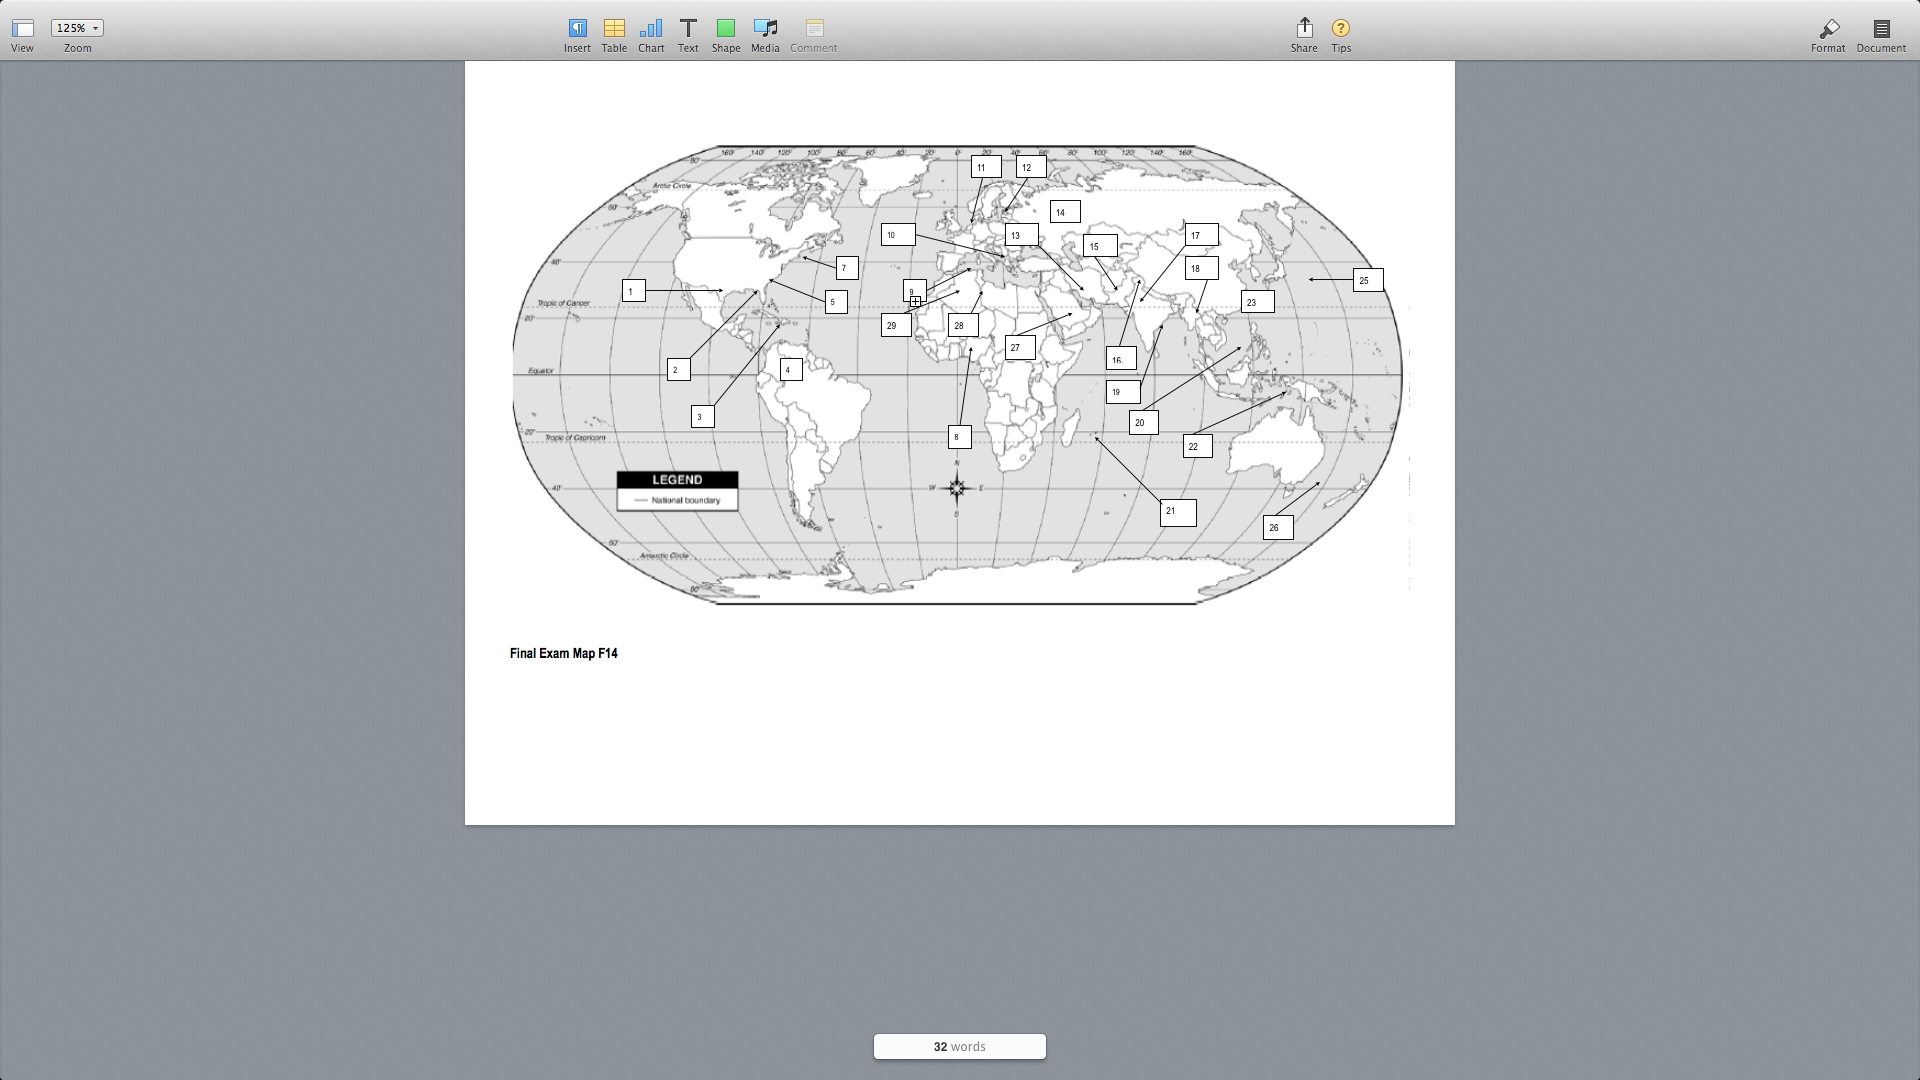 Solved use the map provided to answer the following quest 125 view oom insert table chart text shape media comment share tips format document 140 use the map provided to answer the following questions gumiabroncs Image collections